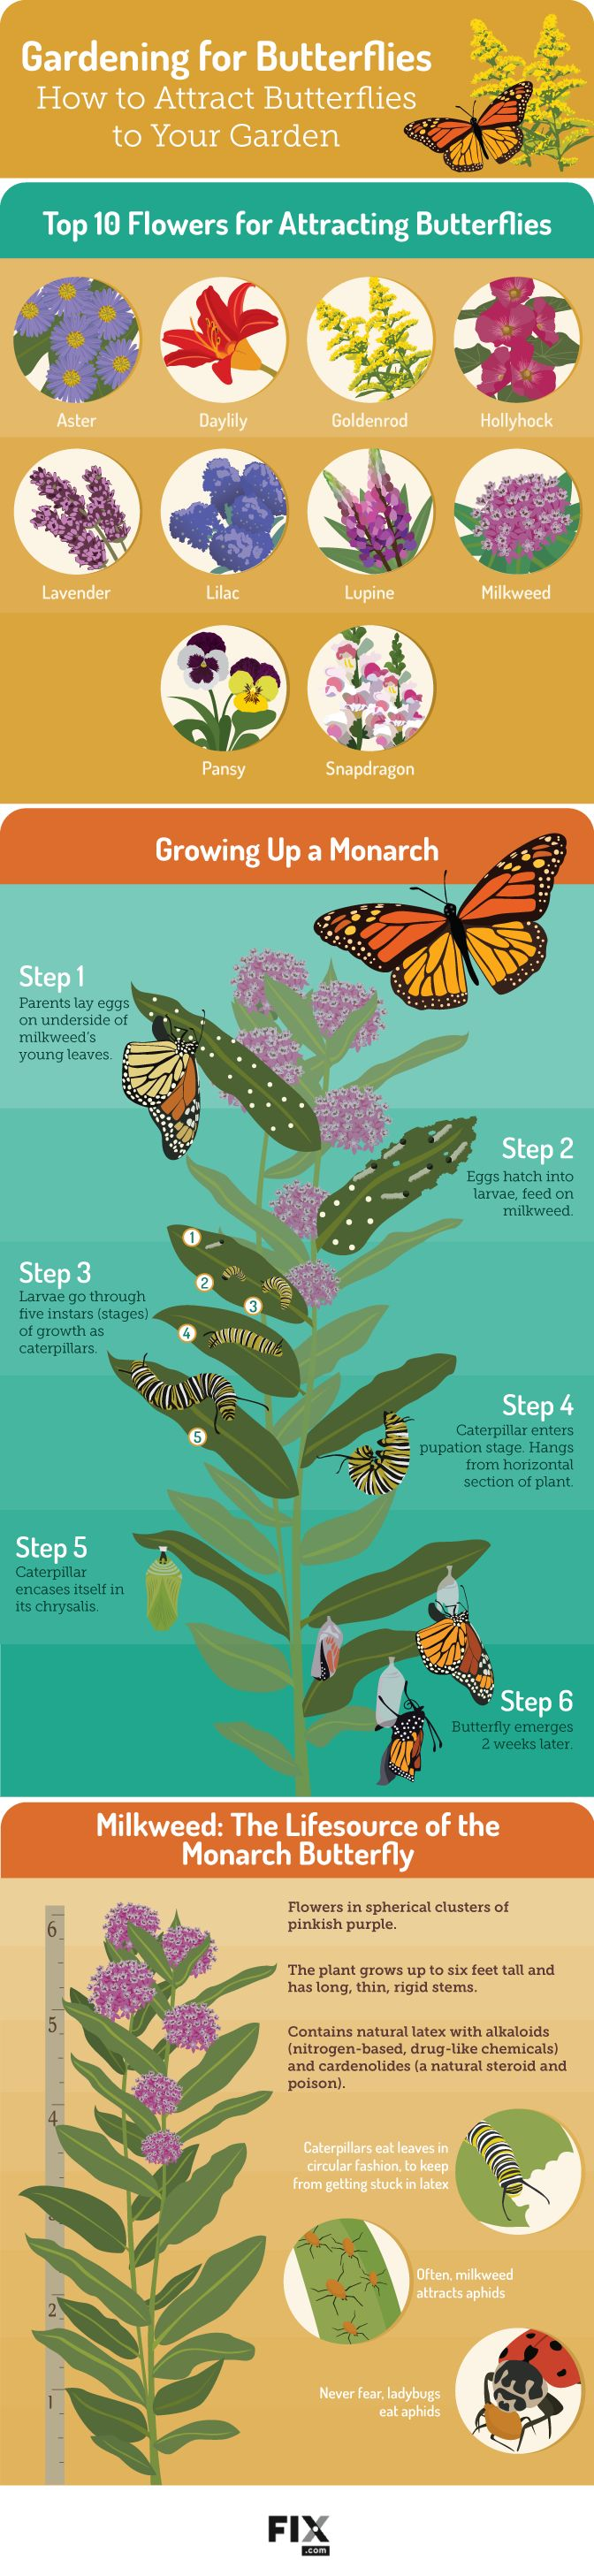 Gardening for Butterflies How to Attract Butterflies to Your Garden #infographic…